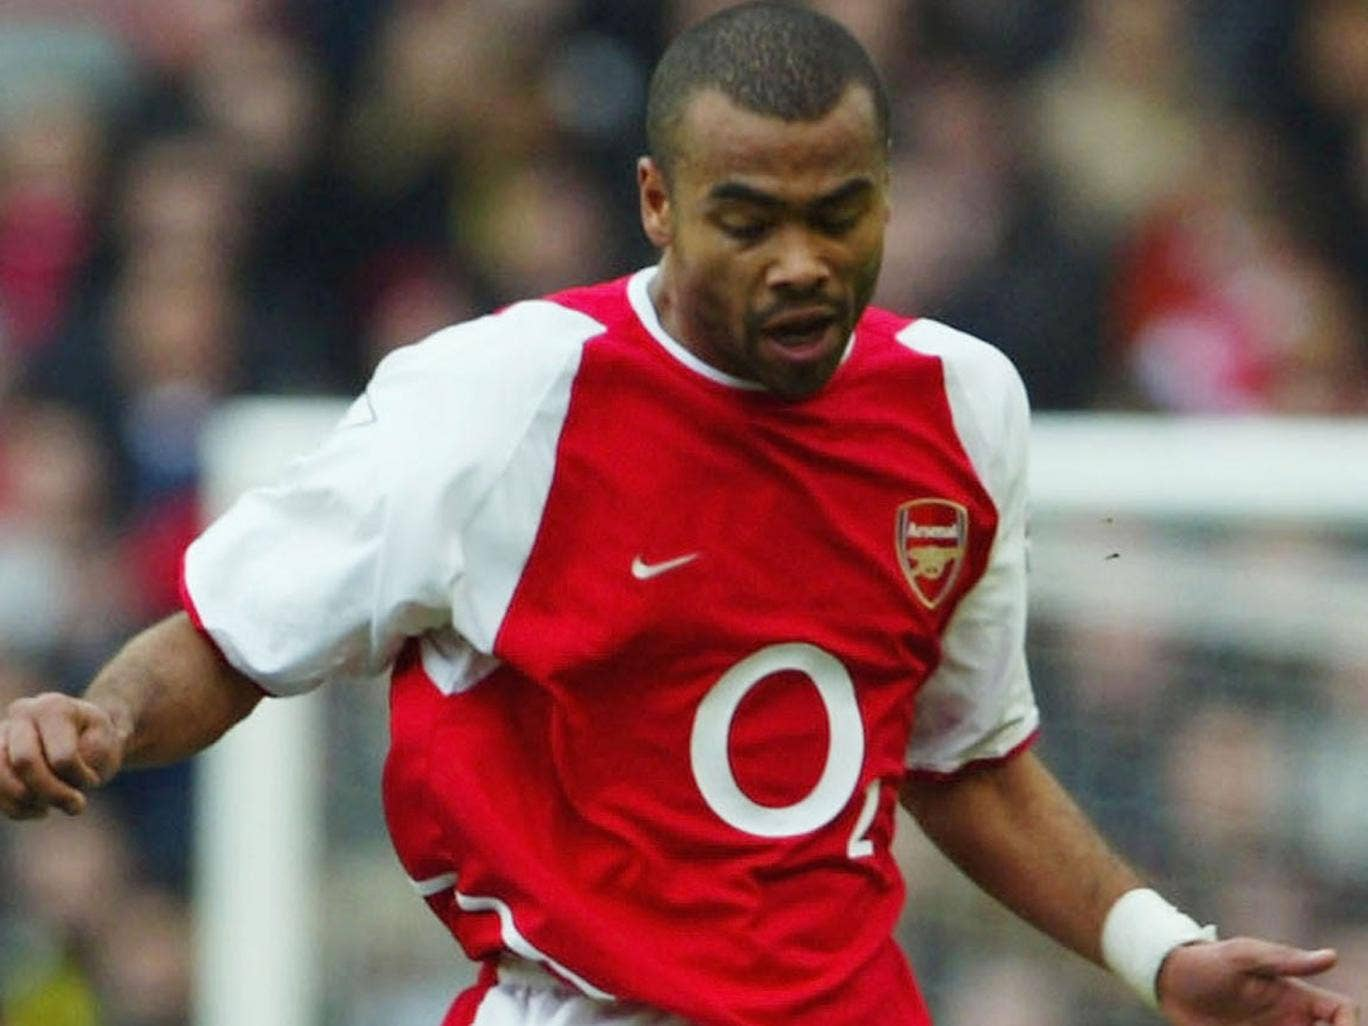 Ashley Cole couldn't rejoin Arsenal, could he?